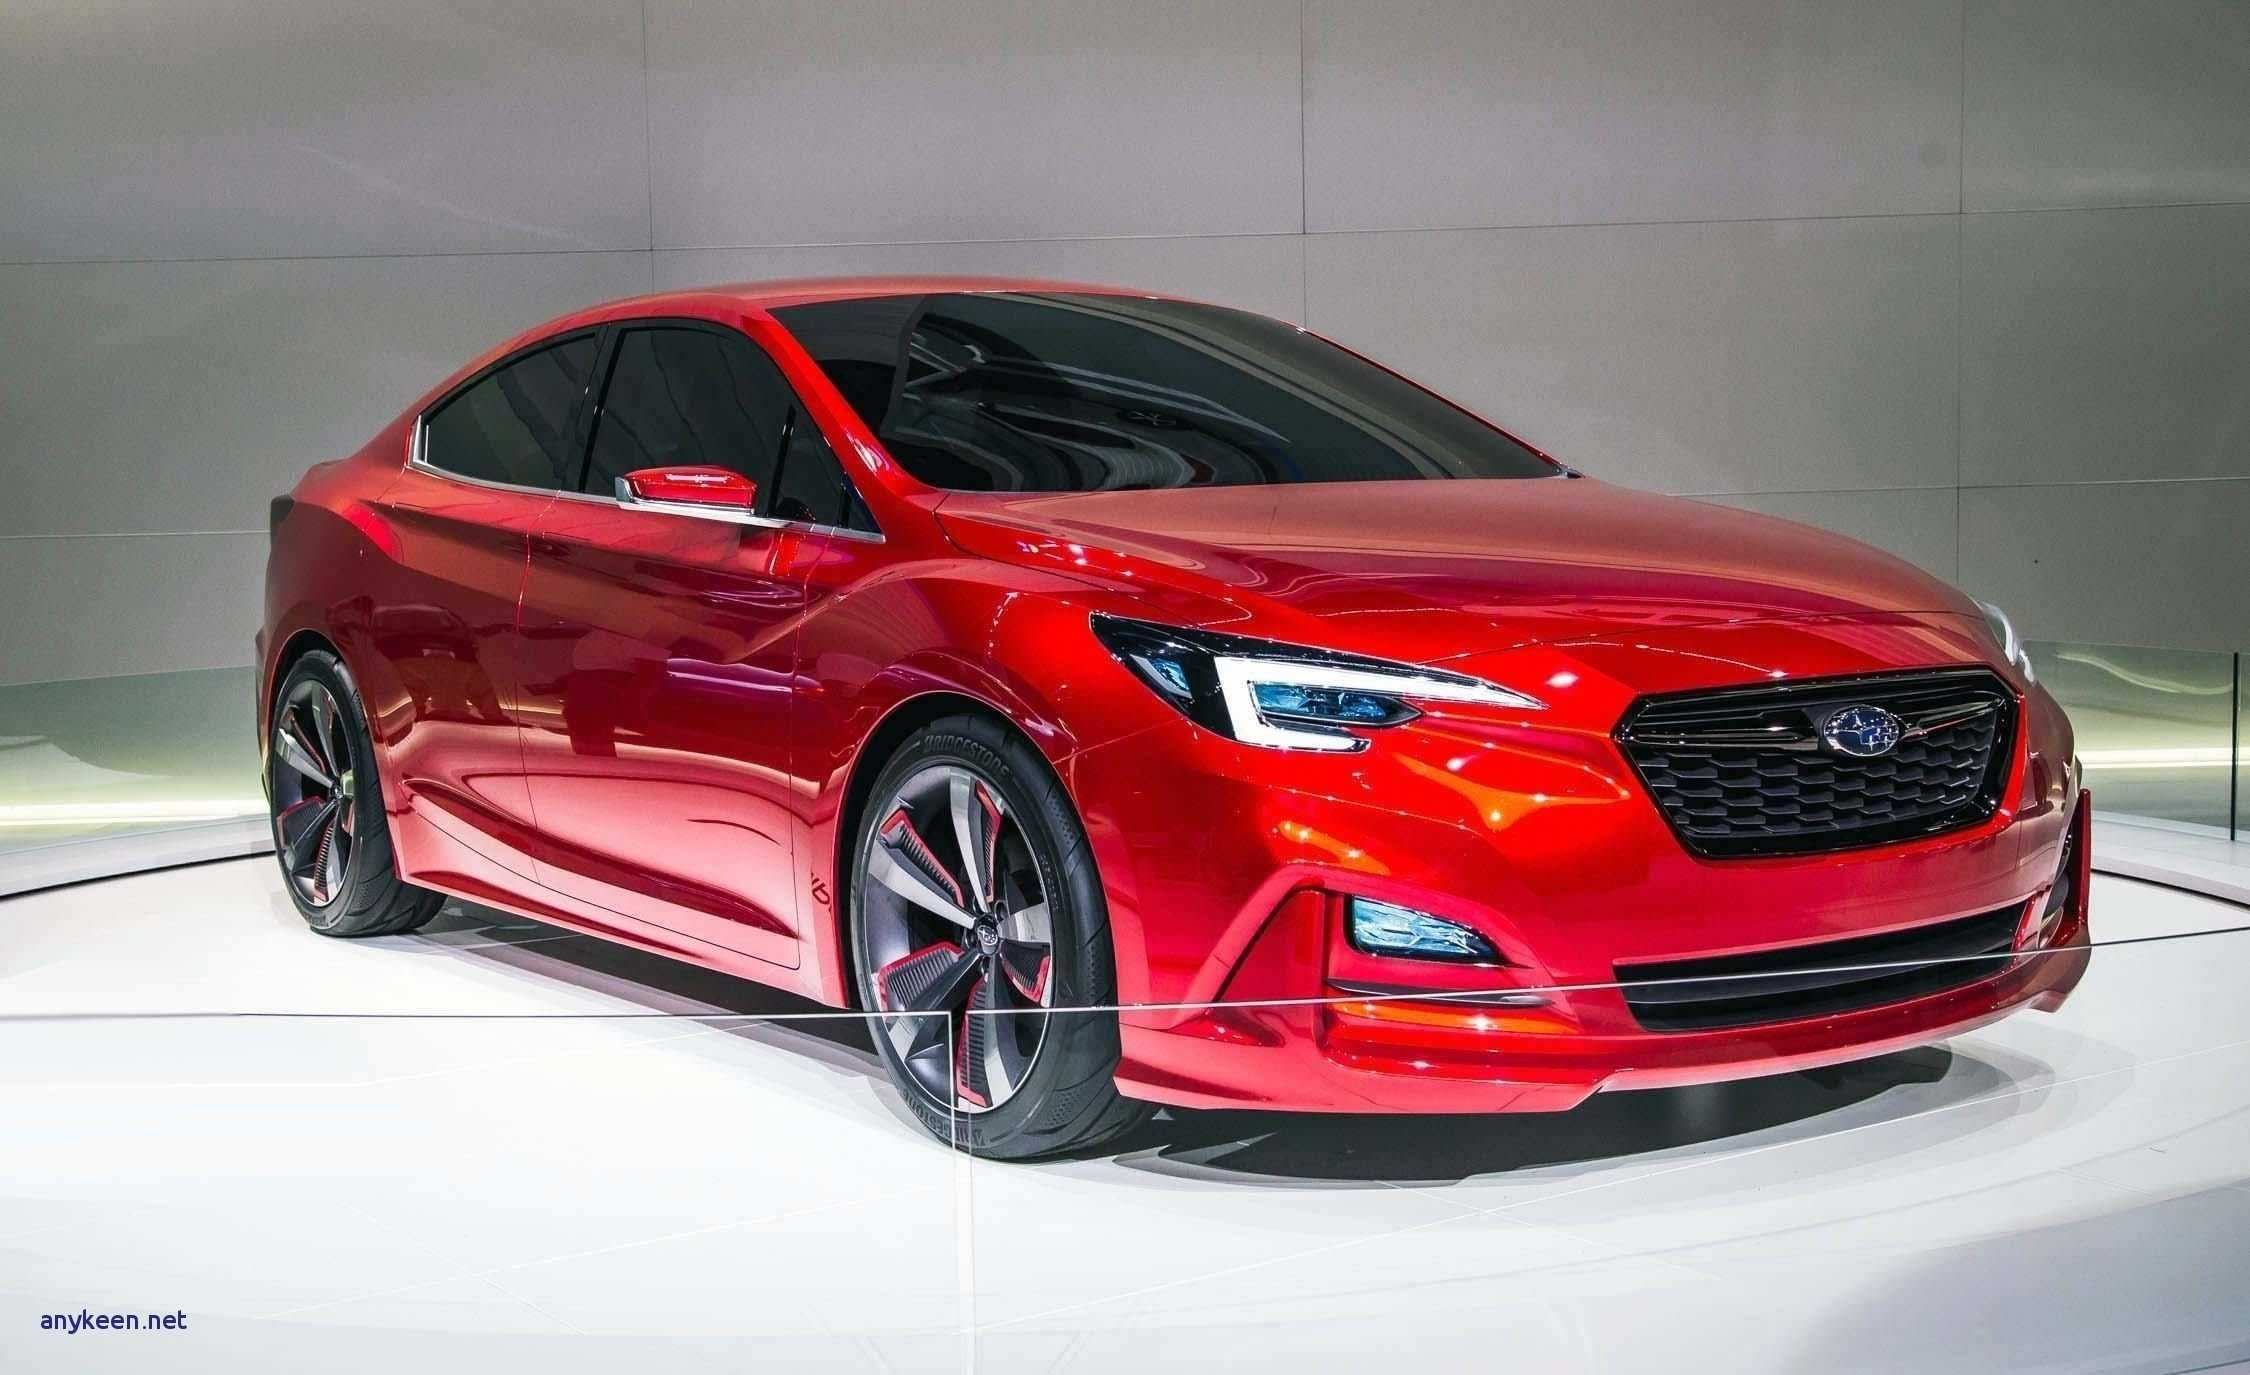 49 The New Subaru 2019 Hatchback Specs Concept with New Subaru 2019 Hatchback Specs